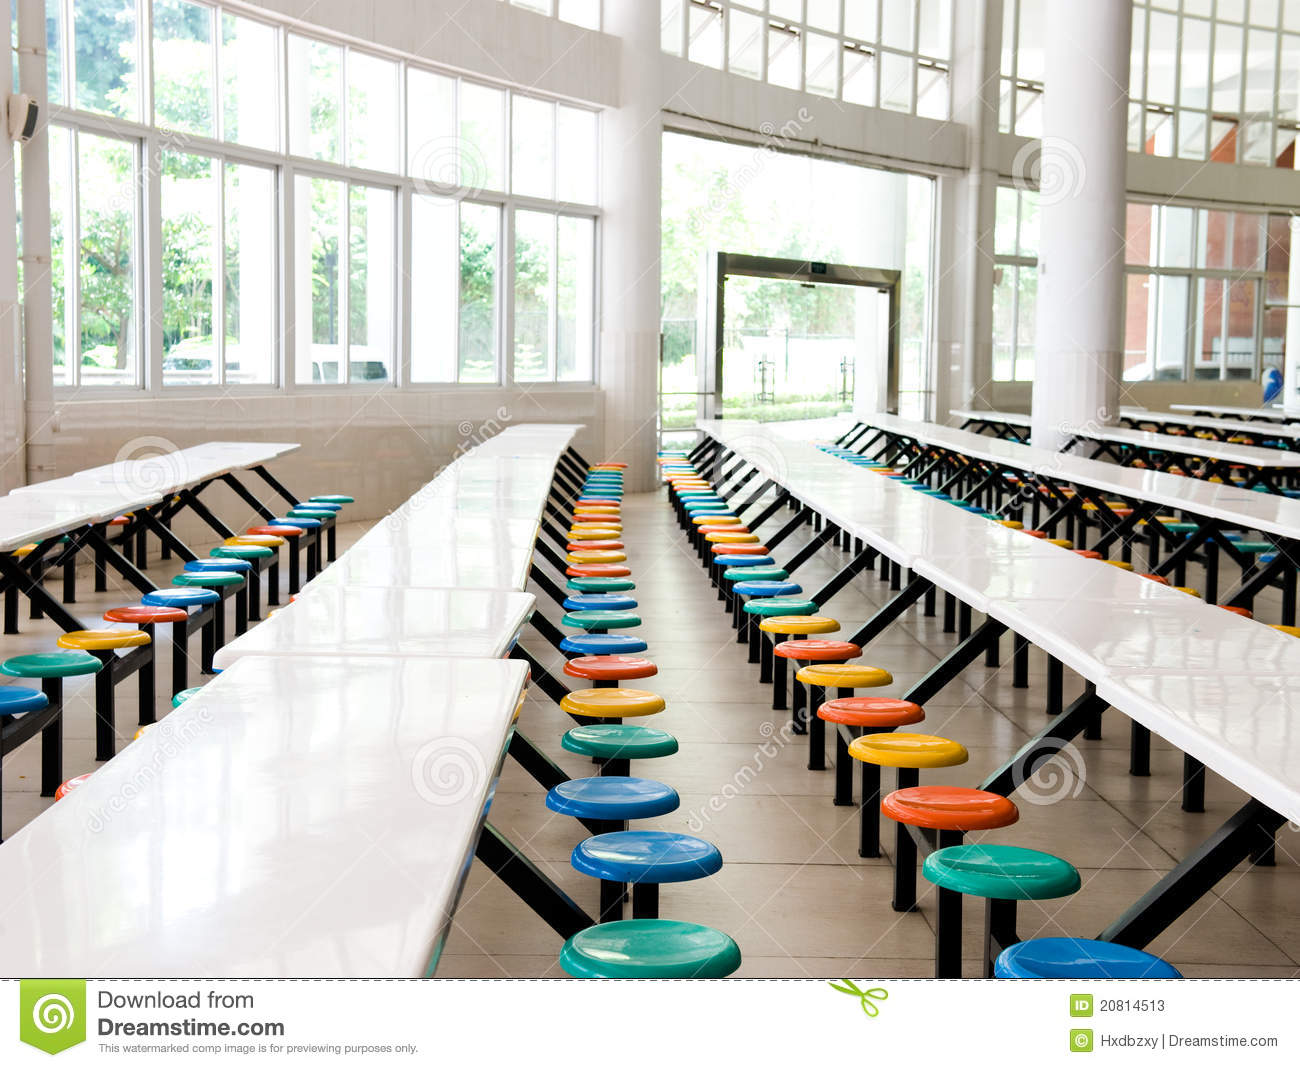 School Cafeteria Stock Photos   Image  20814513